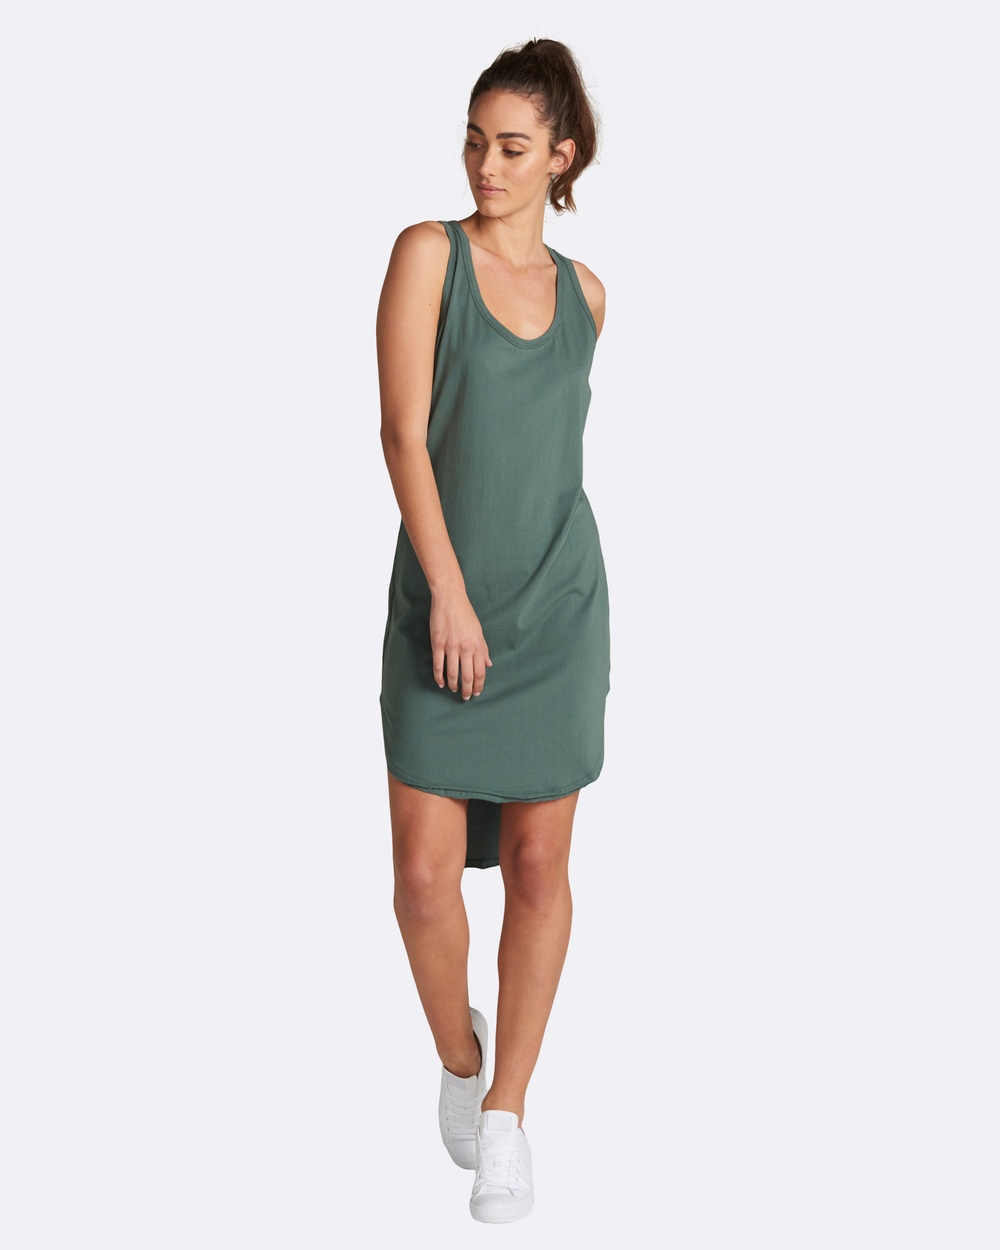 jac + mooki Polly Dress Dresses Green Polly Dress